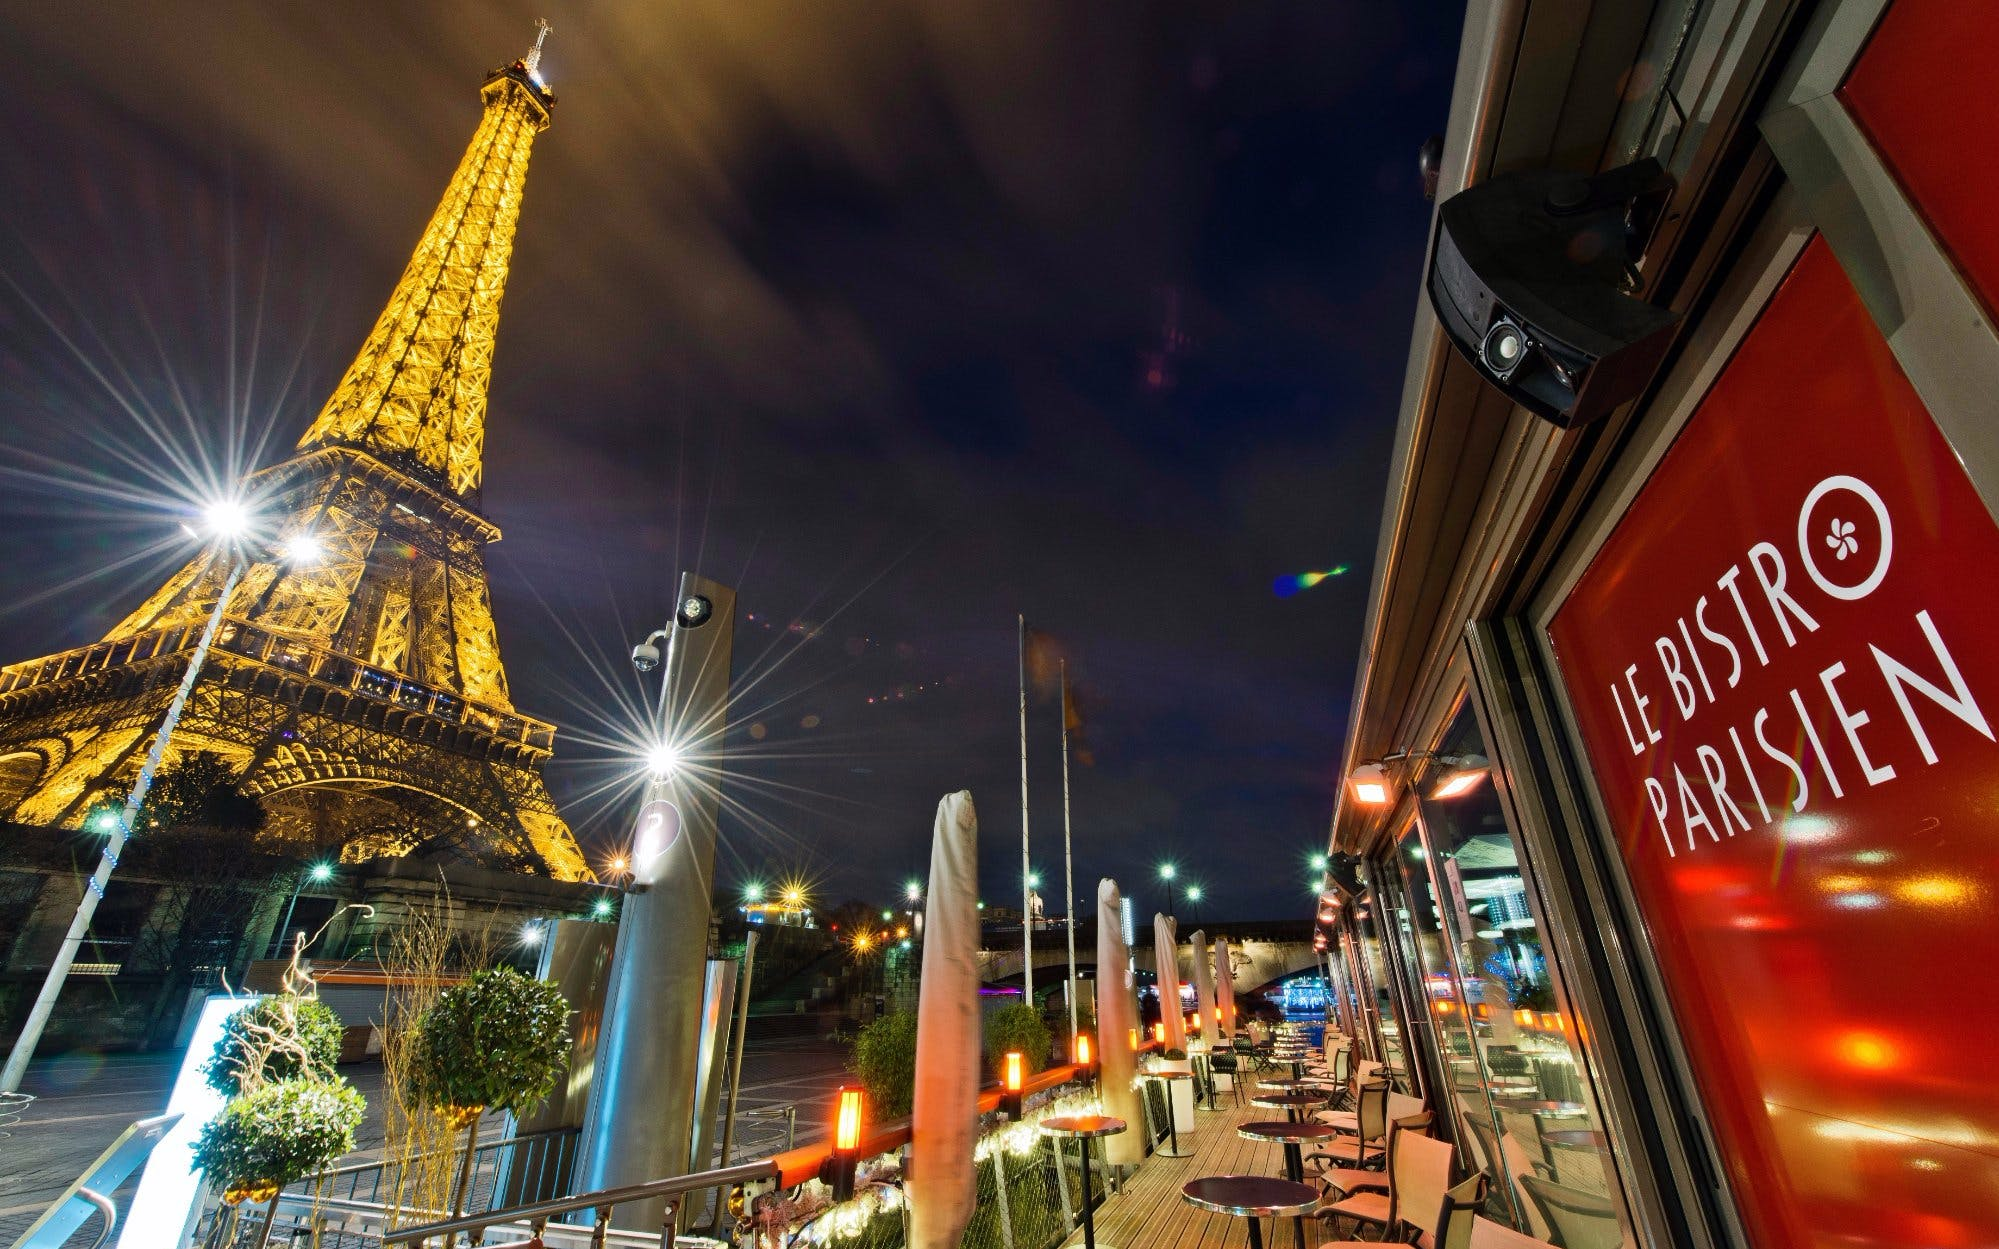 city of lights: paris after dark sightseeing cruise-2